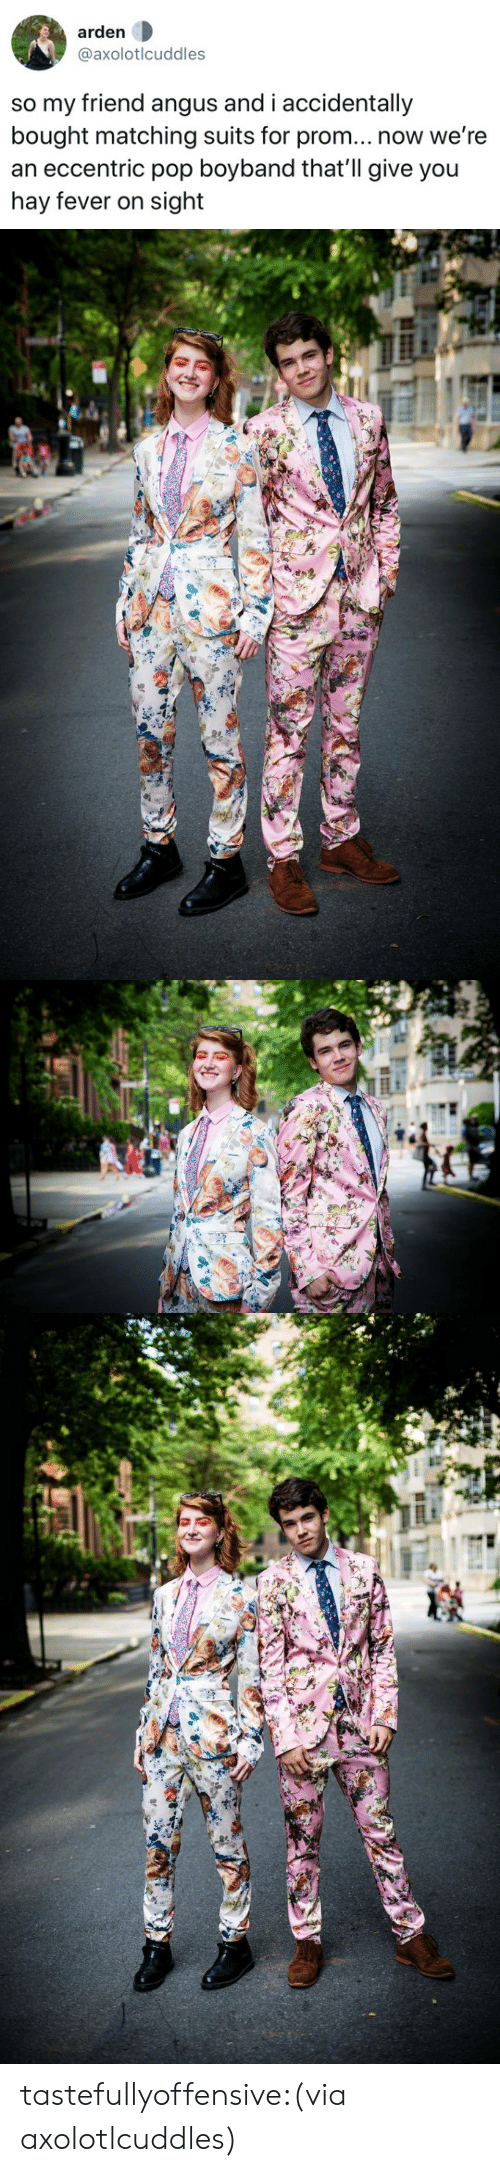 Pop, Tumblr, and Twitter: arden  @axolotlcuddles  so my friend angus and i accidentally  bought matching suits for prom... now we're  an eccentric pop boyband that'll give you  hay fever on sight tastefullyoffensive:(via axolotlcuddles)